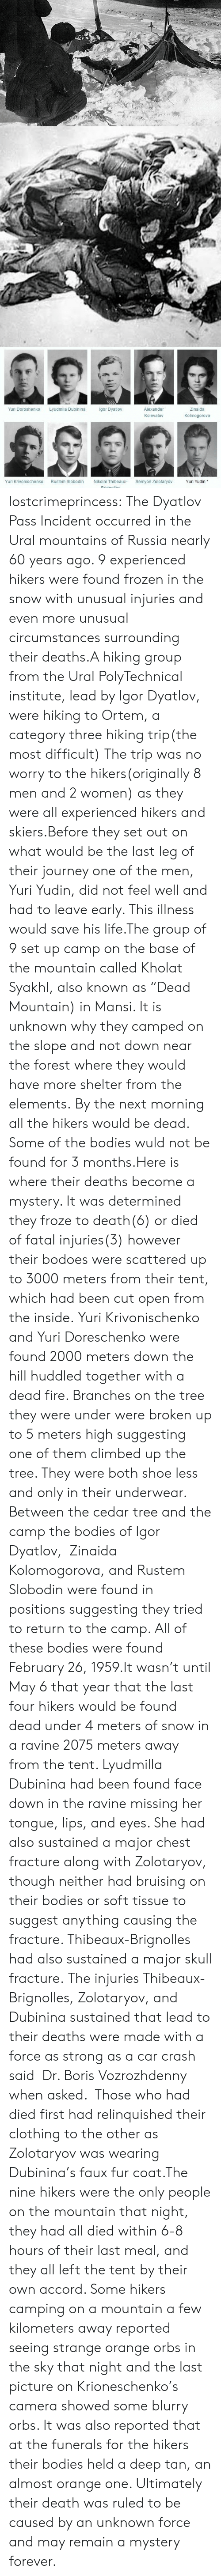 "Tans: Yuri Doroshenko  Lyudmila Dubinina  gor Dyatlov  Alexander  Zinaida  Kolmogorova  Kolevatov  Yuri Krivonischenko  Rustem Slobodin  Nikolai Thibeaux-  Semyon Zolotaryov  Yuri Yudin* lostcrimeprincess:  The Dyatlov Pass Incident occurred in the Ural mountains of Russia nearly 60 years ago. 9 experienced hikers were found frozen in the snow with unusual injuries and even more unusual circumstances surrounding their deaths.A hiking group from the Ural PolyTechnical institute, lead by Igor Dyatlov, were hiking to Ortem, a category three hiking trip(the most difficult) The trip was no worry to the hikers(originally 8 men and 2 women) as they were all experienced hikers and skiers.Before they set out on what would be the last leg of their journey one of the men, Yuri Yudin, did not feel well and had to leave early. This illness would save his life.The group of 9 set up camp on the base of the mountain called Kholat Syakhl, also known as ""Dead Mountain) in Mansi. It is unknown why they camped on the slope and not down near the forest where they would have more shelter from the elements. By the next morning all the hikers would be dead. Some of the bodies wuld not be found for 3 months.Here is where their deaths become a mystery. It was determined they froze to death(6) or died of fatal injuries(3) however their bodoes were scattered up to 3000 meters from their tent, which had been cut open from the inside. Yuri Krivonischenko and Yuri Doreschenko were found 2000 meters down the hill huddled together with a dead fire. Branches on the tree they were under were broken up to 5 meters high suggesting one of them climbed up the tree. They were both shoe less and only in their underwear. Between the cedar tree and the camp the bodies of Igor Dyatlov,  Zinaida Kolomogorova, and Rustem Slobodin were found in positions suggesting they tried to return to the camp. All of these bodies were found February 26, 1959.It wasn't until May 6 that year that the last four hikers would be found dead under 4 meters of snow in a ravine 2075 meters away from the tent. Lyudmilla Dubinina had been found face down in the ravine missing her tongue, lips, and eyes. She had also sustained a major chest fracture along with Zolotaryov, though neither had bruising on their bodies or soft tissue to suggest anything causing the fracture.   Thibeaux-Brignolles had also sustained a major skull fracture.  The injuries Thibeaux-Brignolles, Zolotaryov, and Dubinina sustained that lead to their deaths were made with a force as strong as a car crash said  Dr. Boris Vozrozhdenny when asked.     Those who had died first had relinquished their clothing to the other as    Zolotaryov was wearing Dubinina's faux fur coat.The nine hikers were the only people on the mountain that night, they had all died within 6-8 hours of their last meal, and they all left the tent by their own accord. Some hikers camping on a mountain a few kilometers away reported seeing strange orange orbs in the sky that night and the last picture on Krioneschenko's camera showed some blurry orbs. It was also reported that at the funerals for the hikers their bodies held a deep tan, an almost orange one. Ultimately their death was ruled to be caused by an unknown force and may remain a mystery forever."